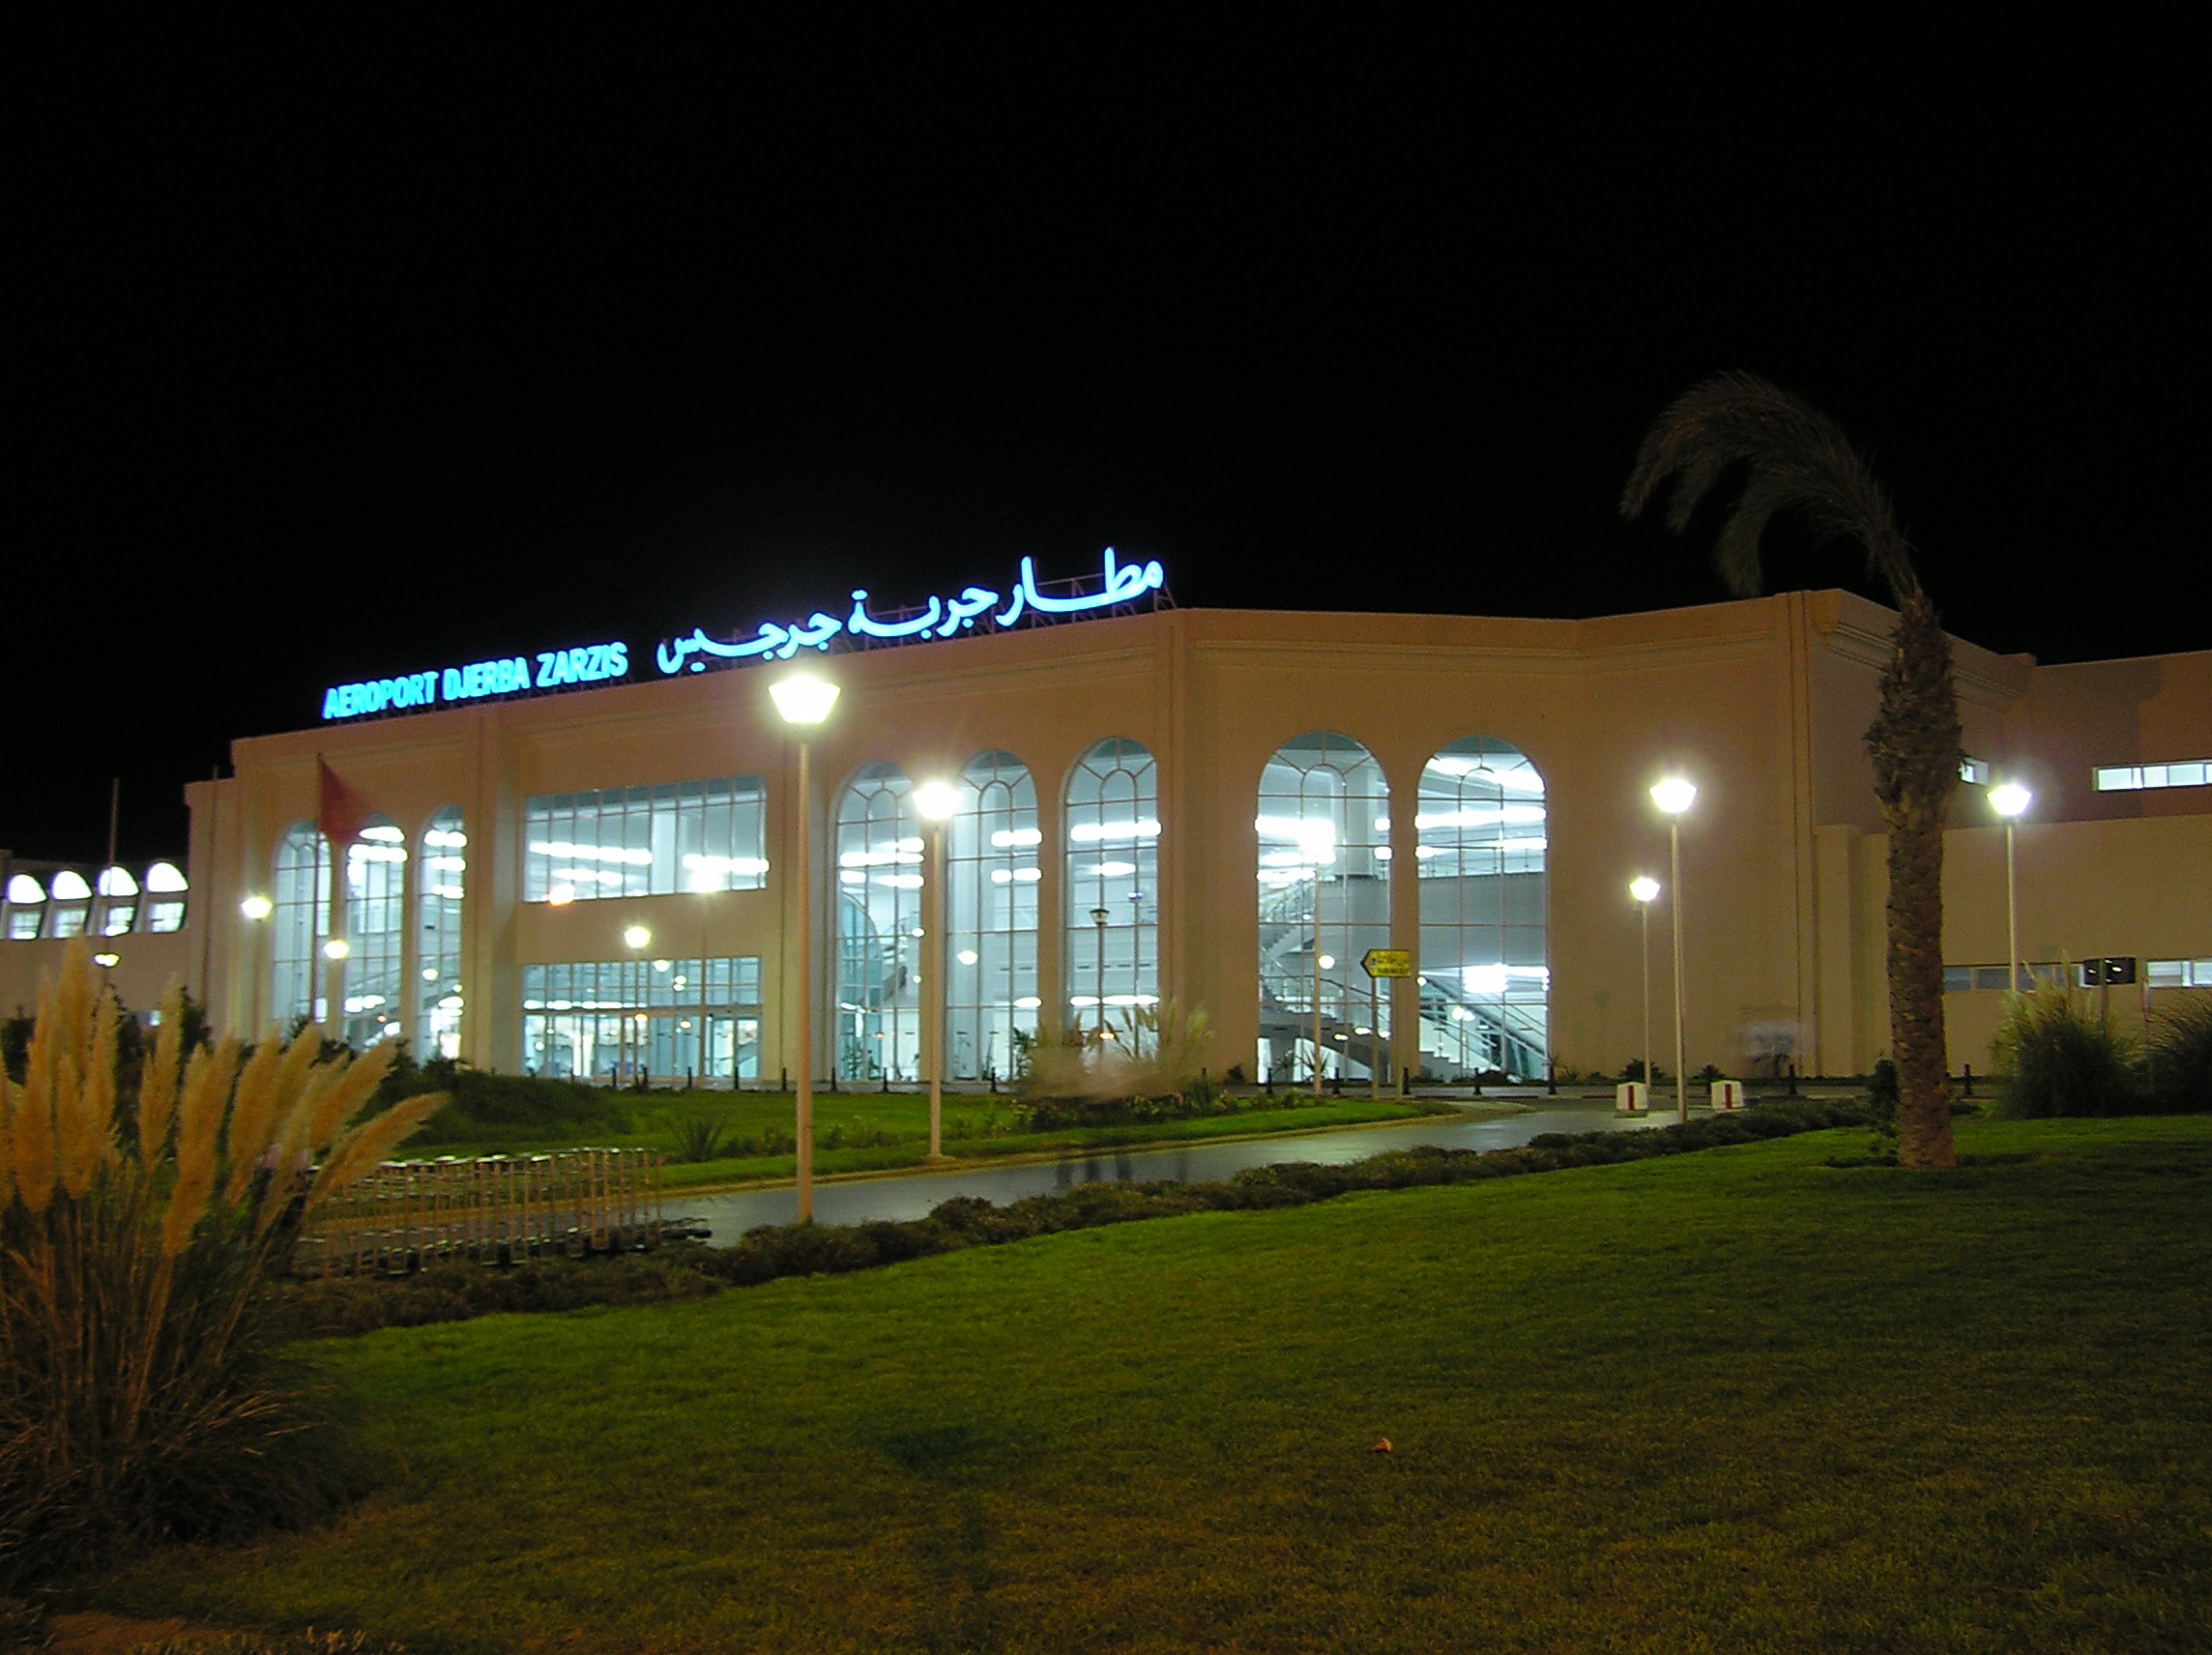 Аэропорт Джерба Зарзис (Djerba Zarzis International Airport).2